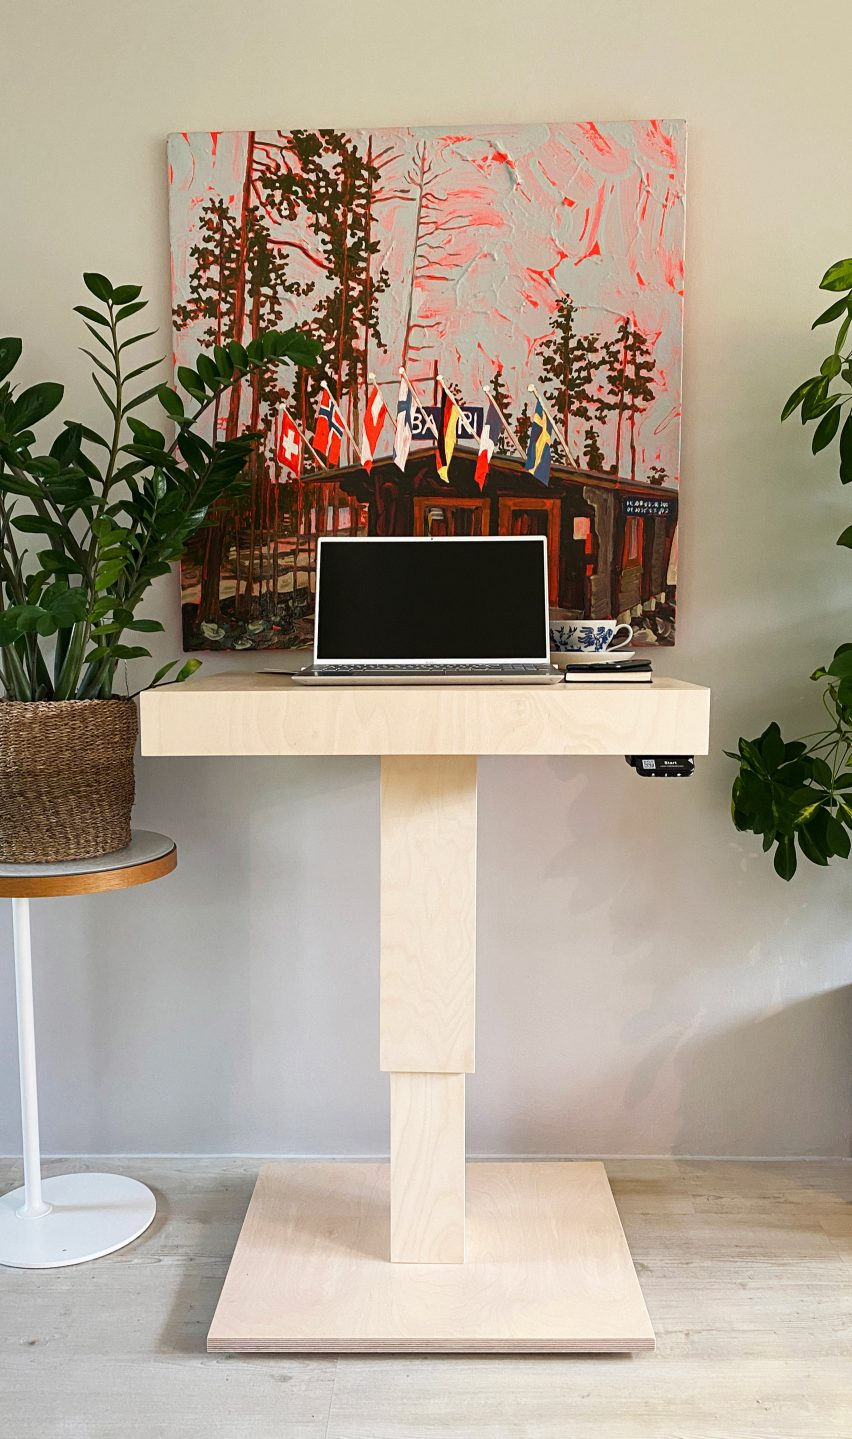 The Tempo electric table by Tenho Design as a standing desk